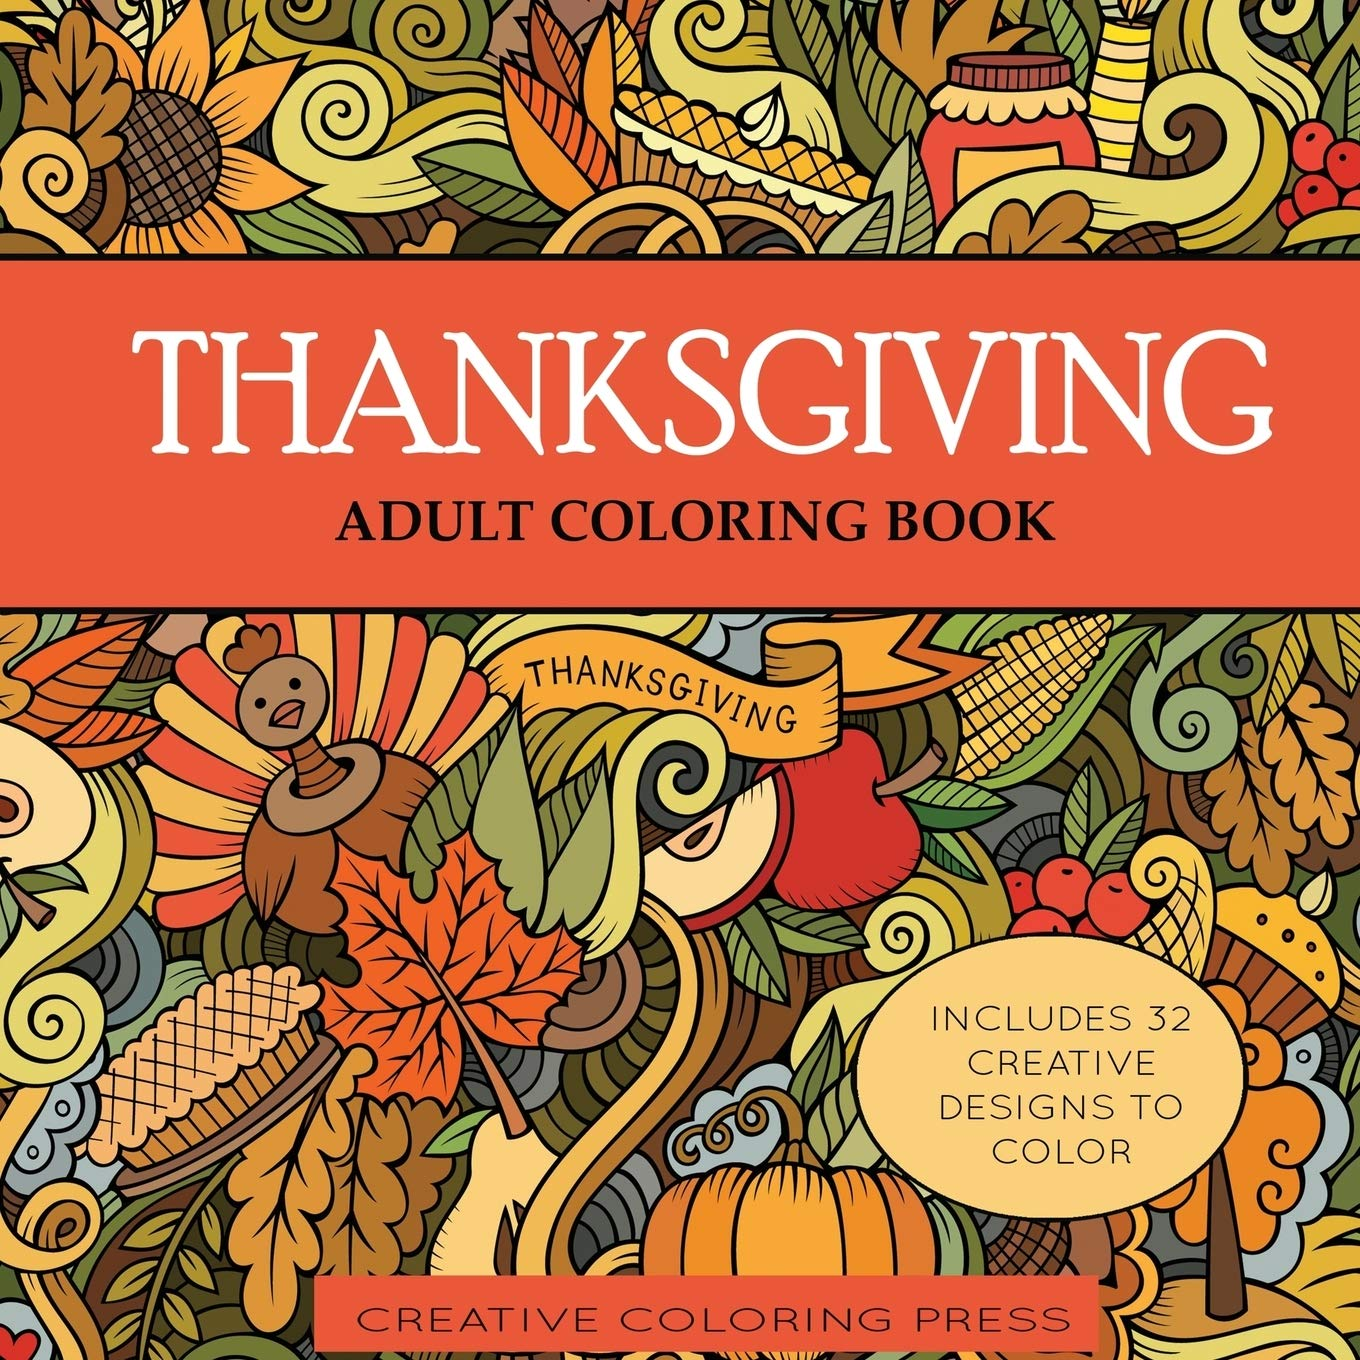 Thanksgiving Adult Coloring Book 32 Thanksgiving Holiday Designs Coloring Pages Adult Coloring Books Creative Coloring 9781942268451 Amazon Com Books